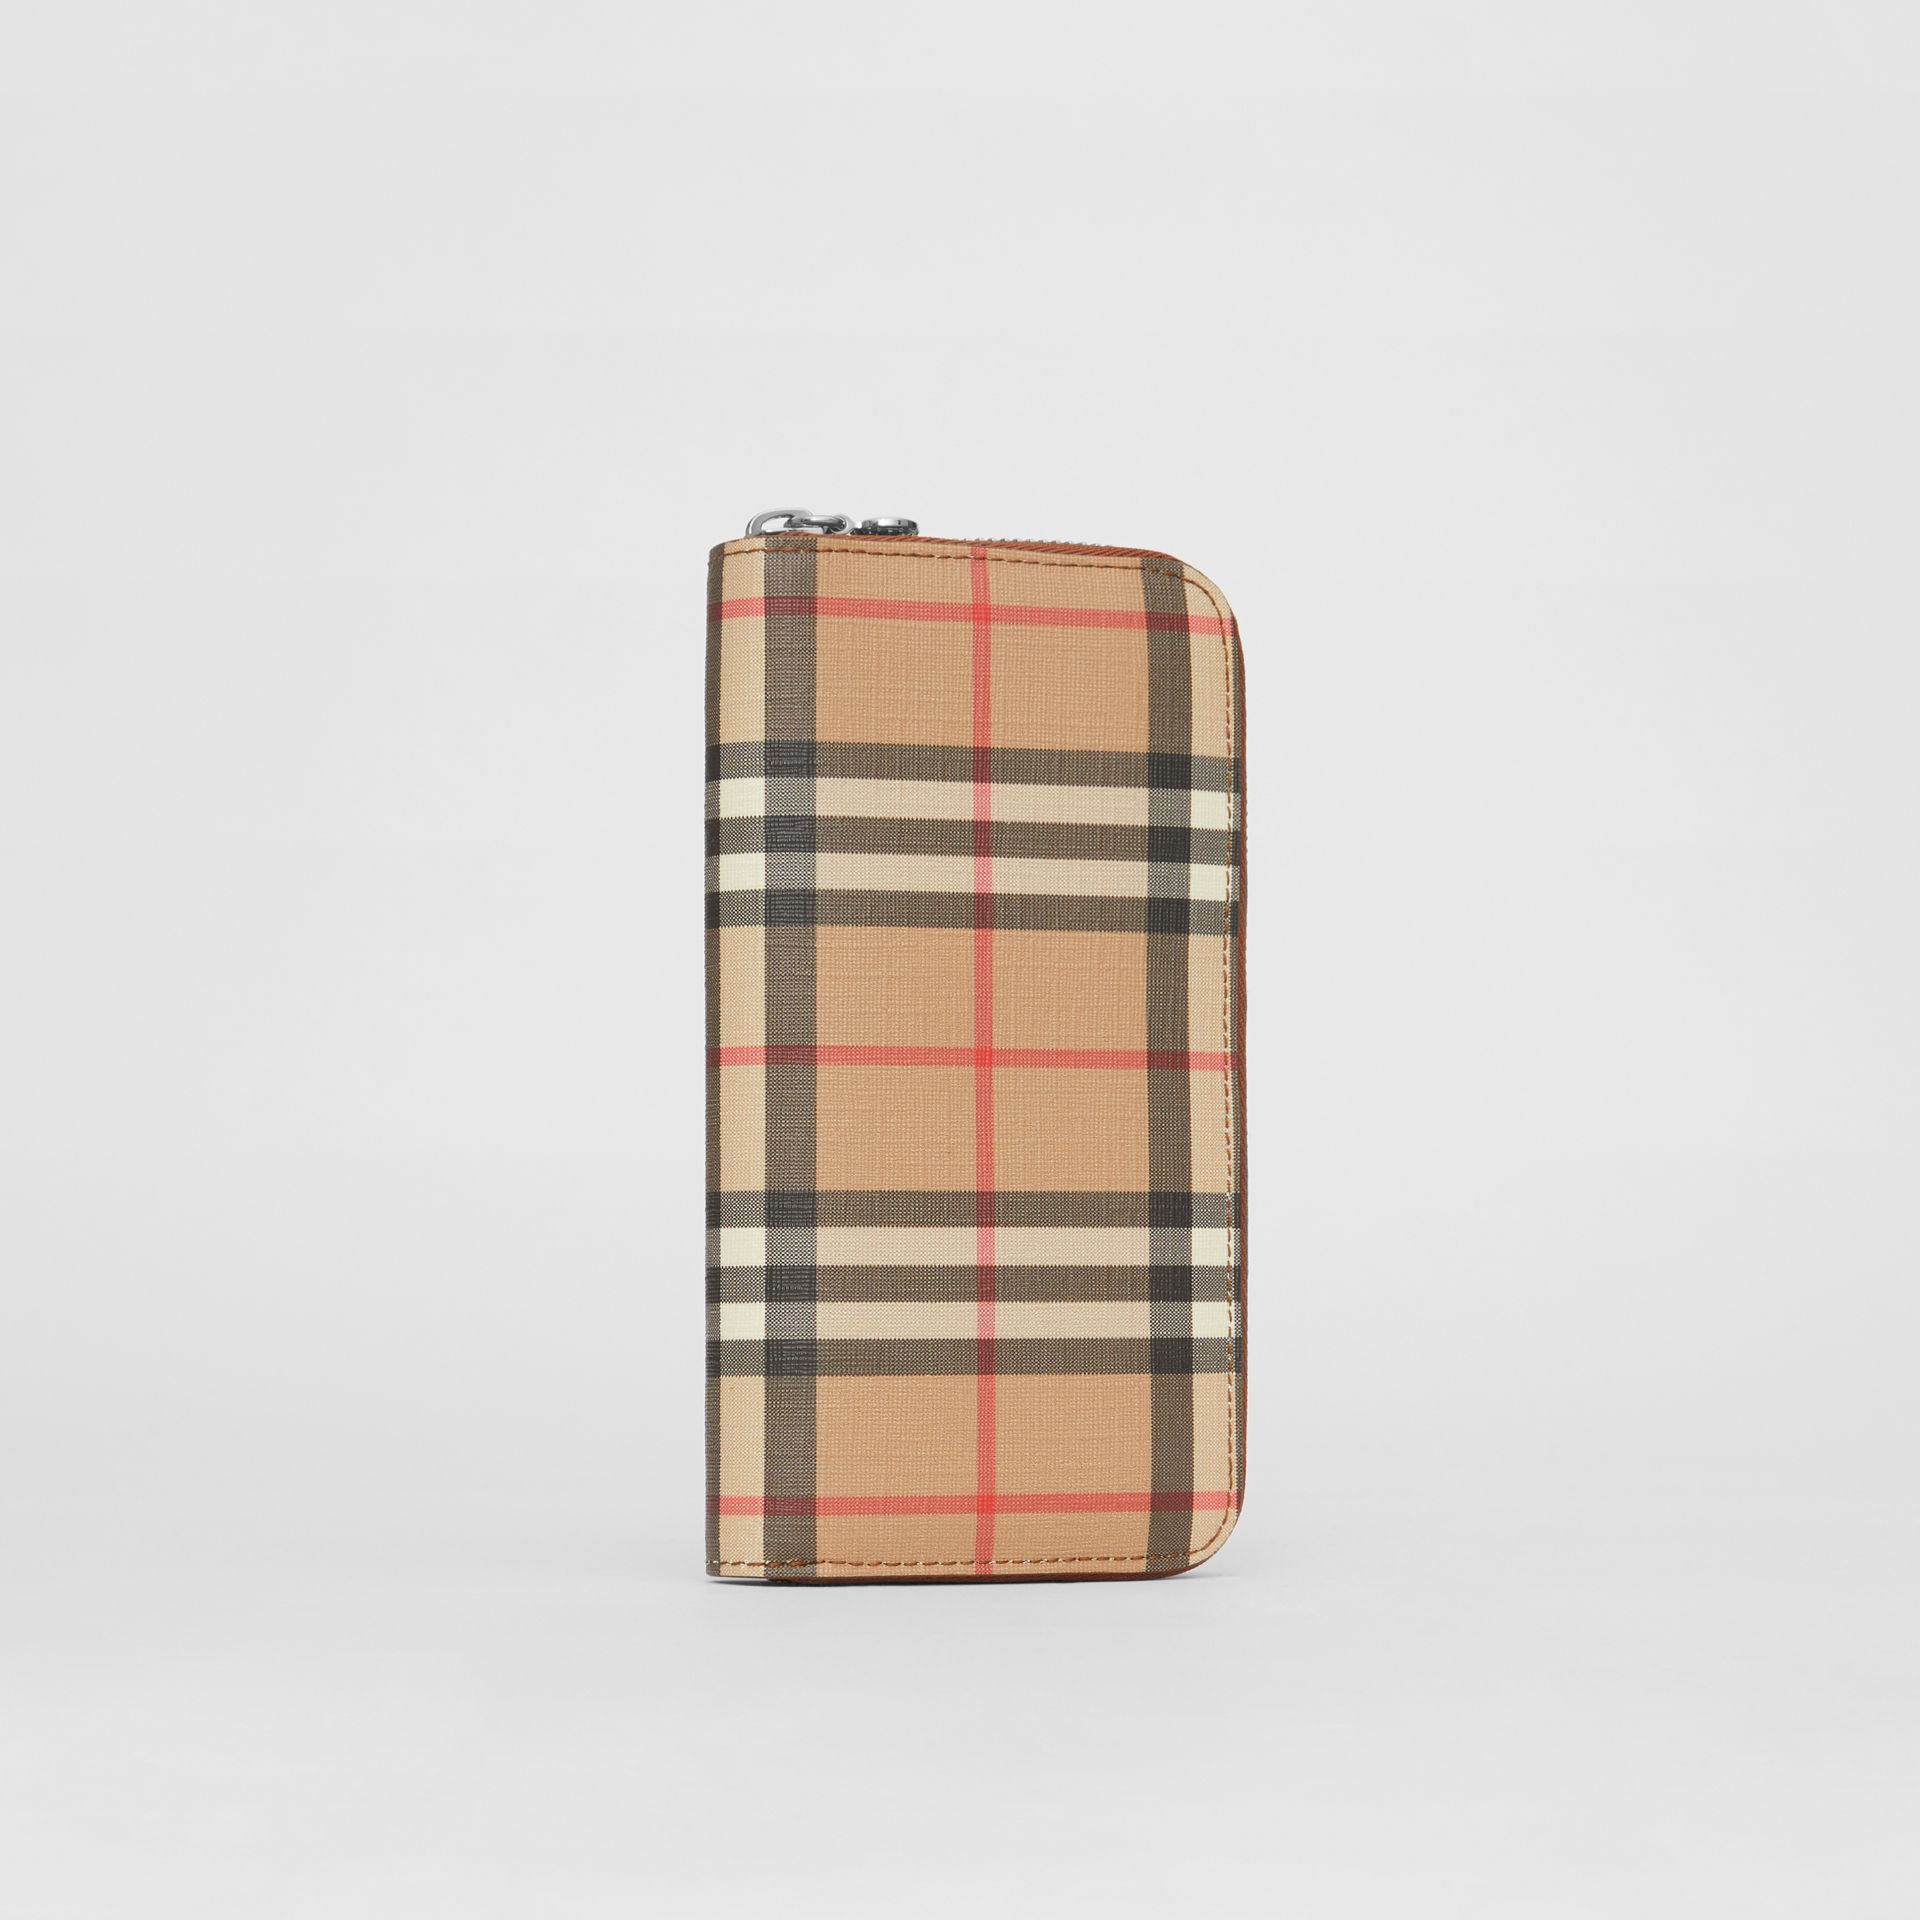 Vintage Check and Leather Ziparound Wallet in Malt Brown - Women | Burberry Australia - gallery image 3